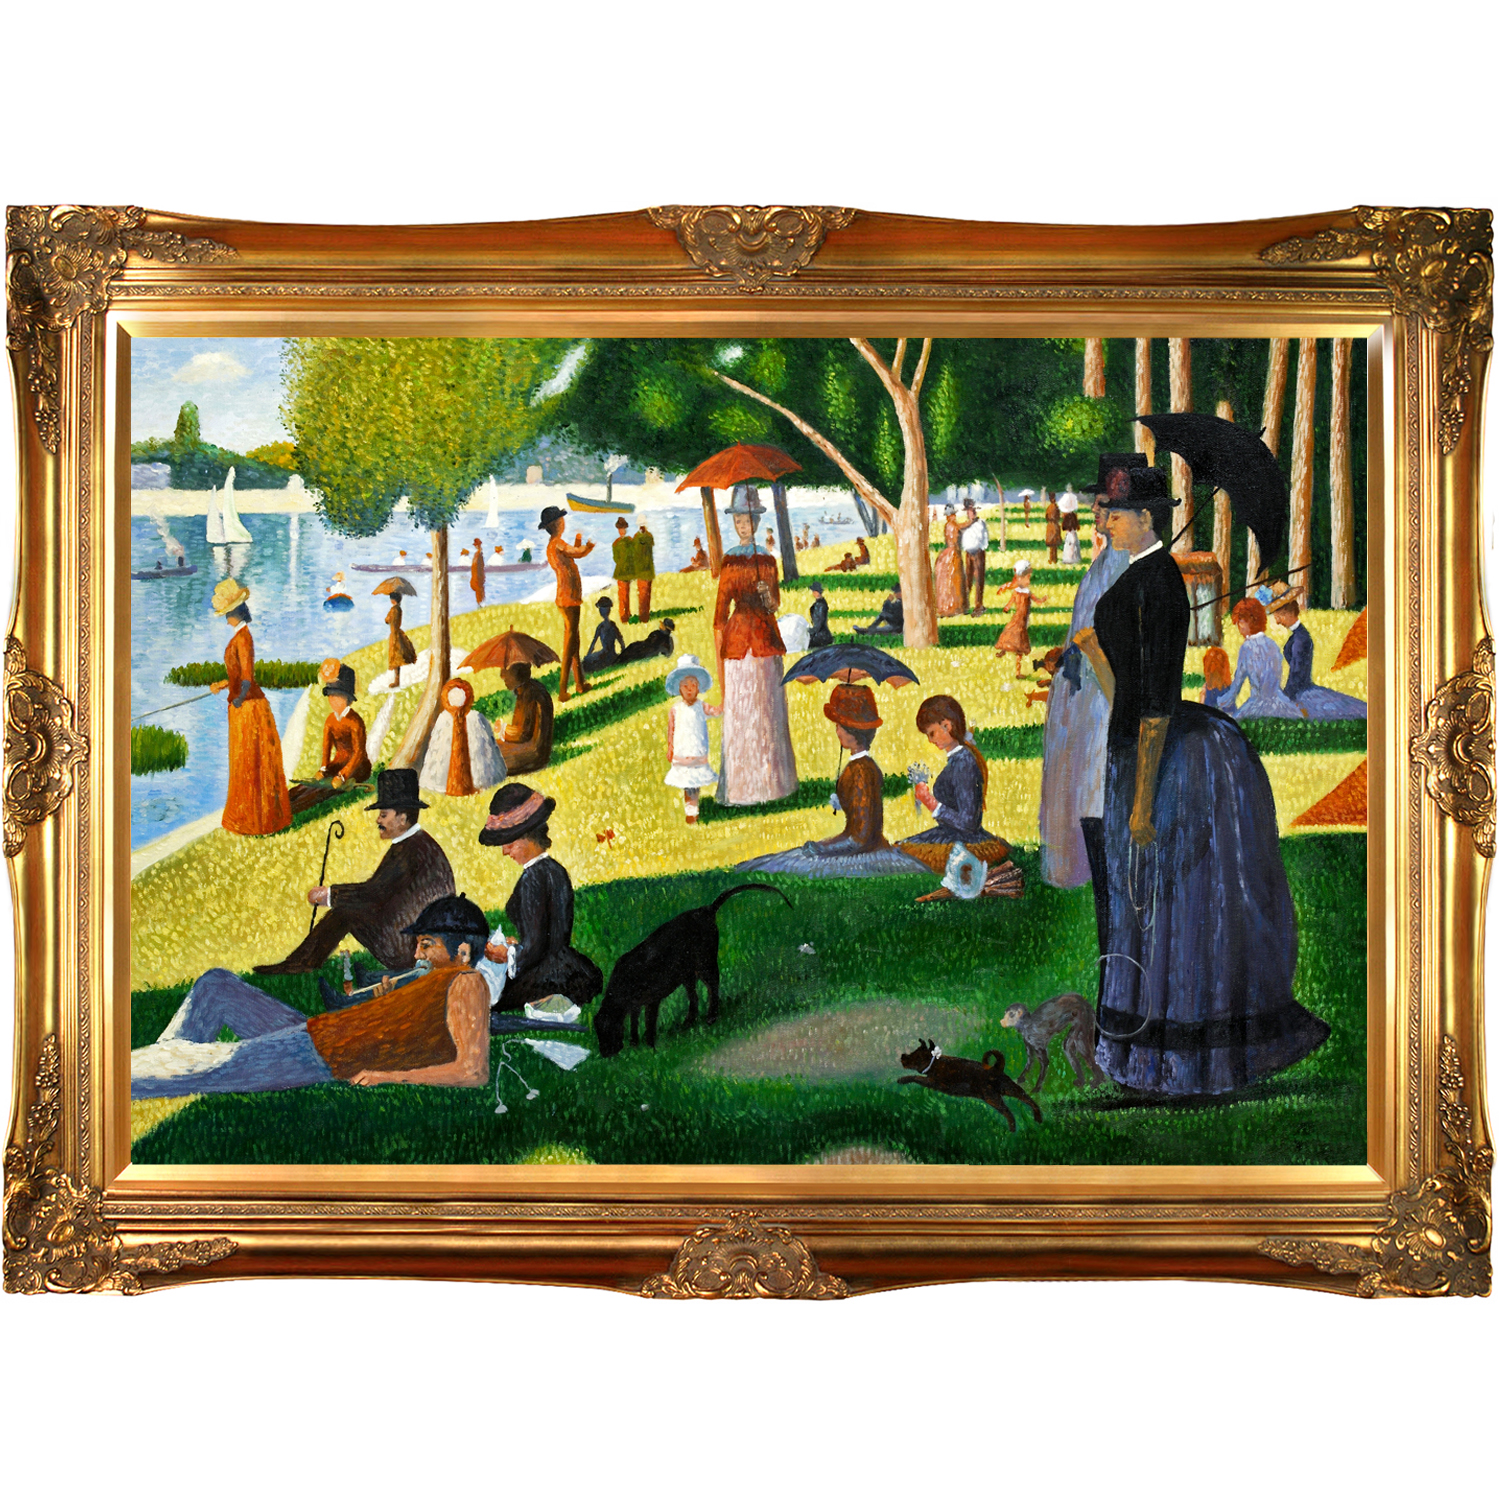 OverstockArt.com Names The Top Five Most Popular Paintings